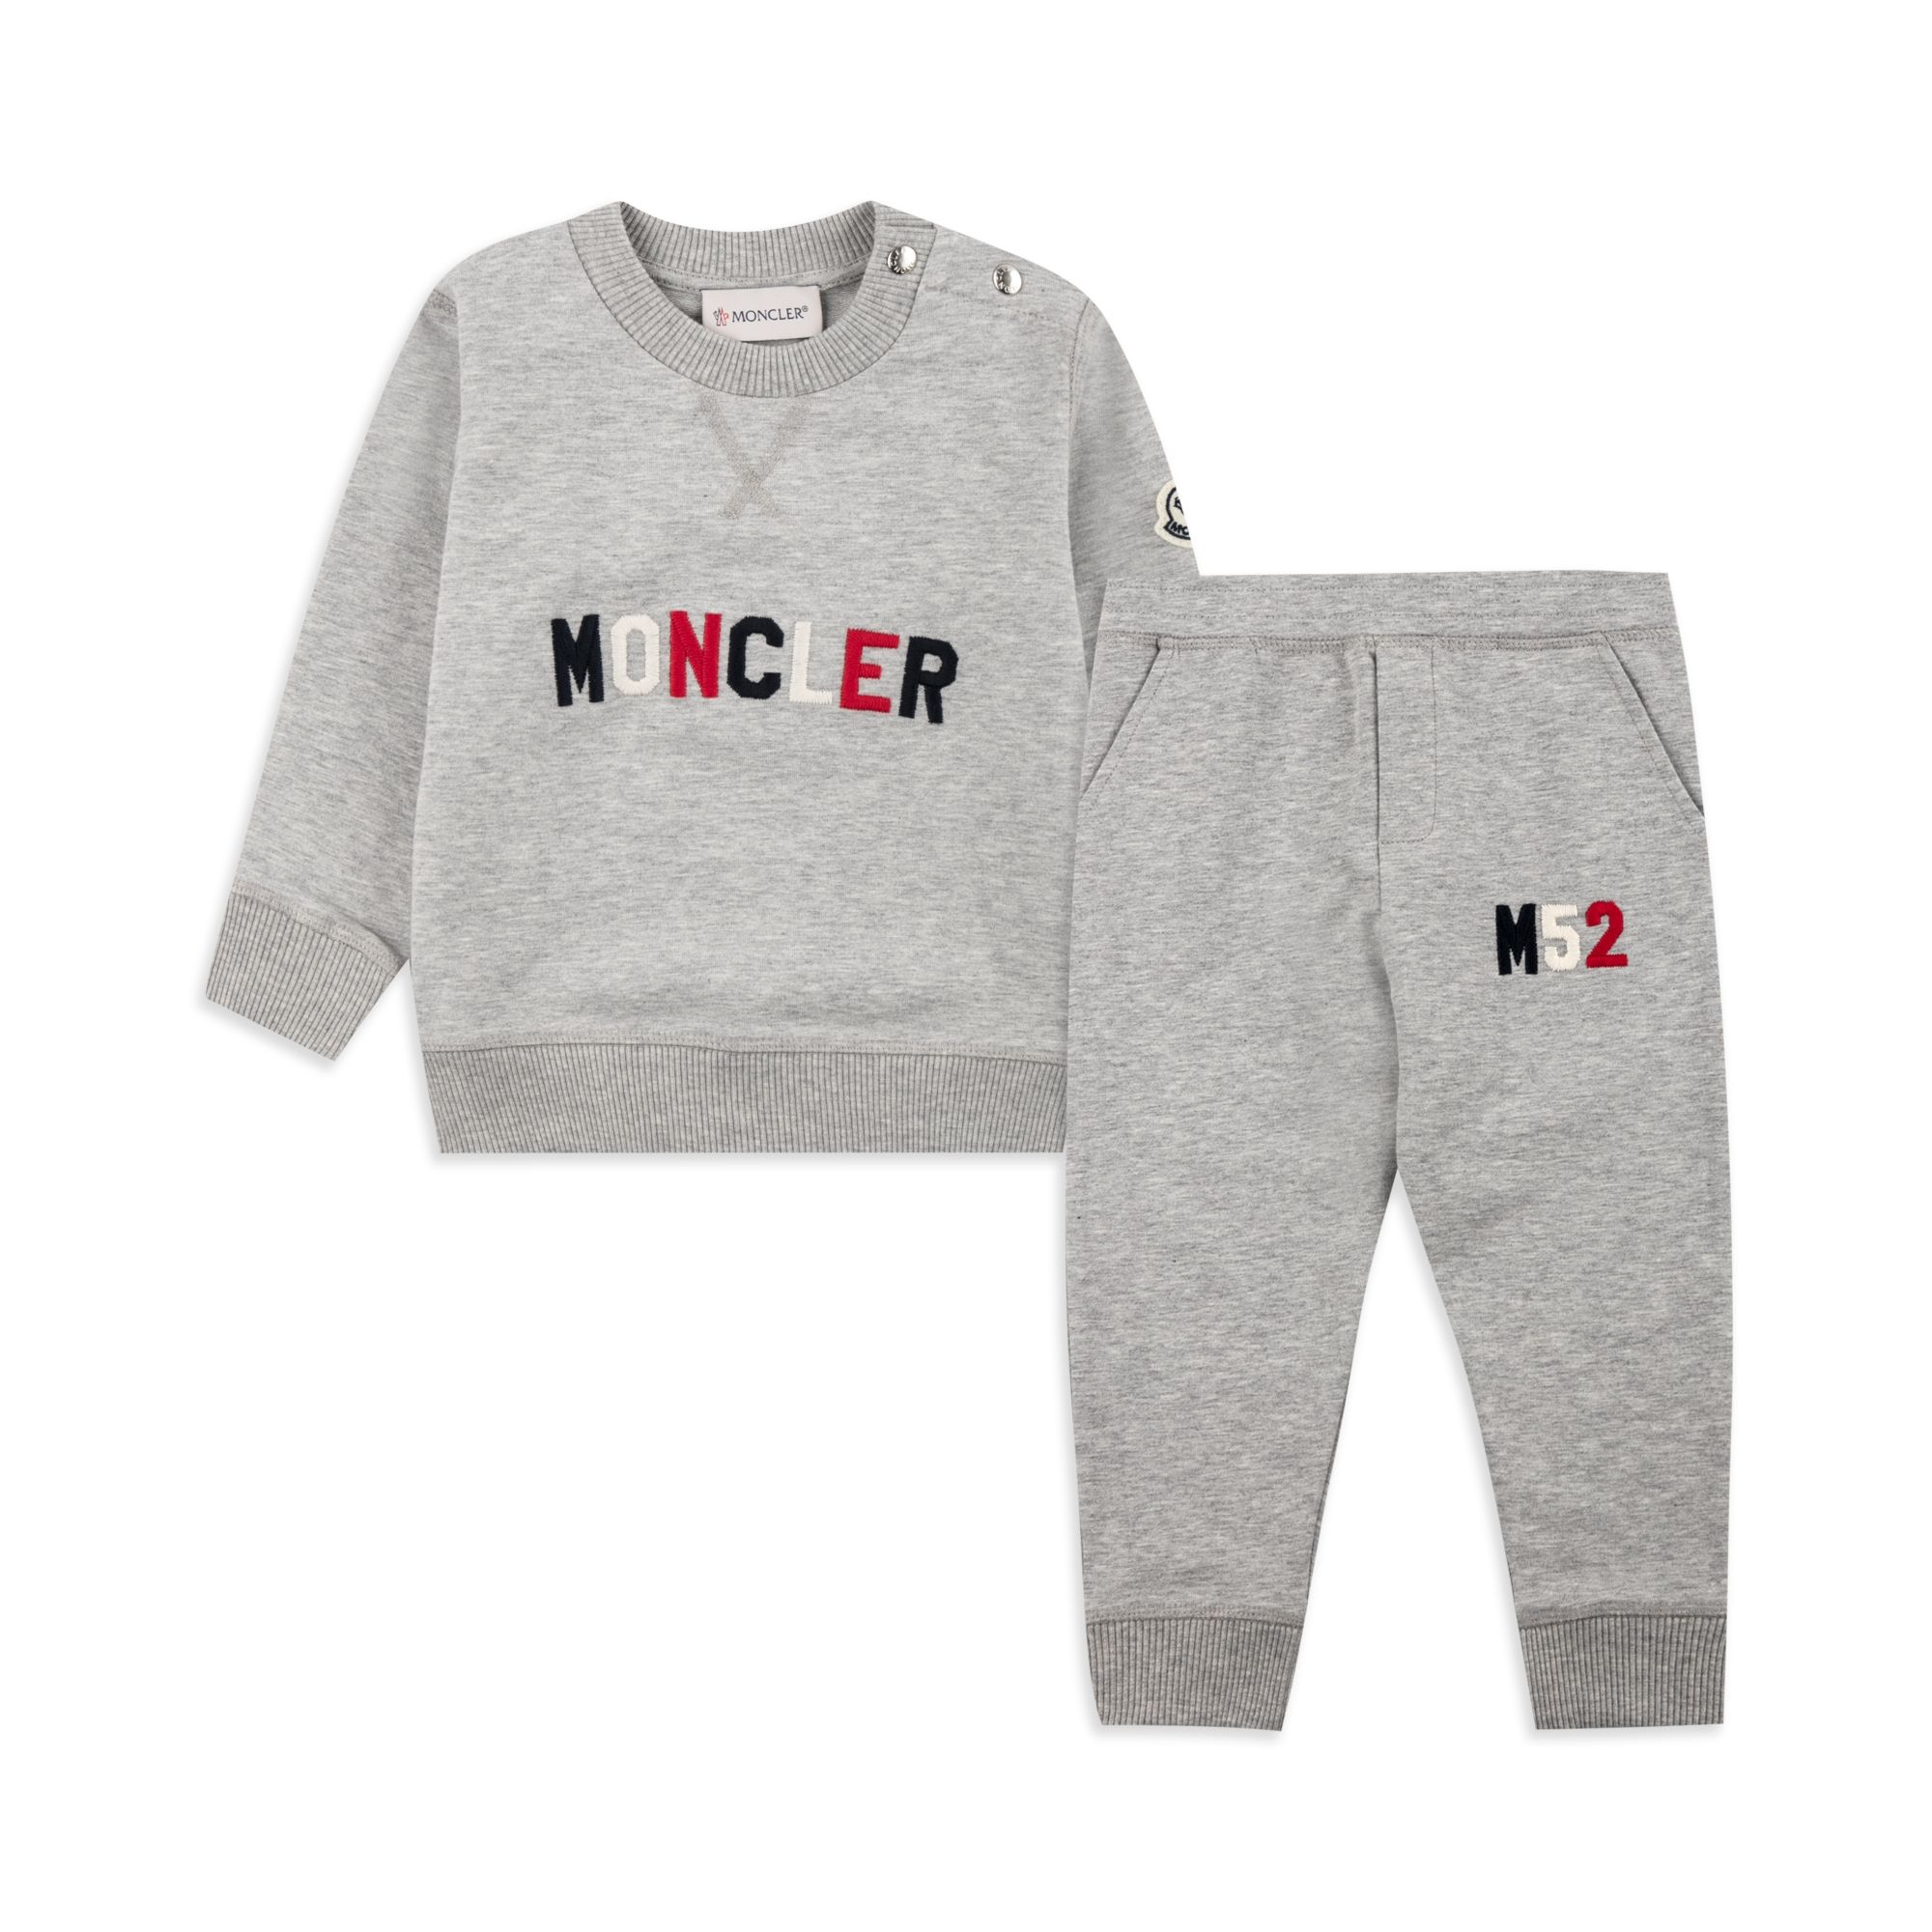 1d4bc3a8b MONCLER Baby Boys Embroidered Logo Tracksuit - Grey Baby boys tracksuit •  Soft stretchy cotton • Jersey sweatshirt • Round neckline • Shoulder popper  ...